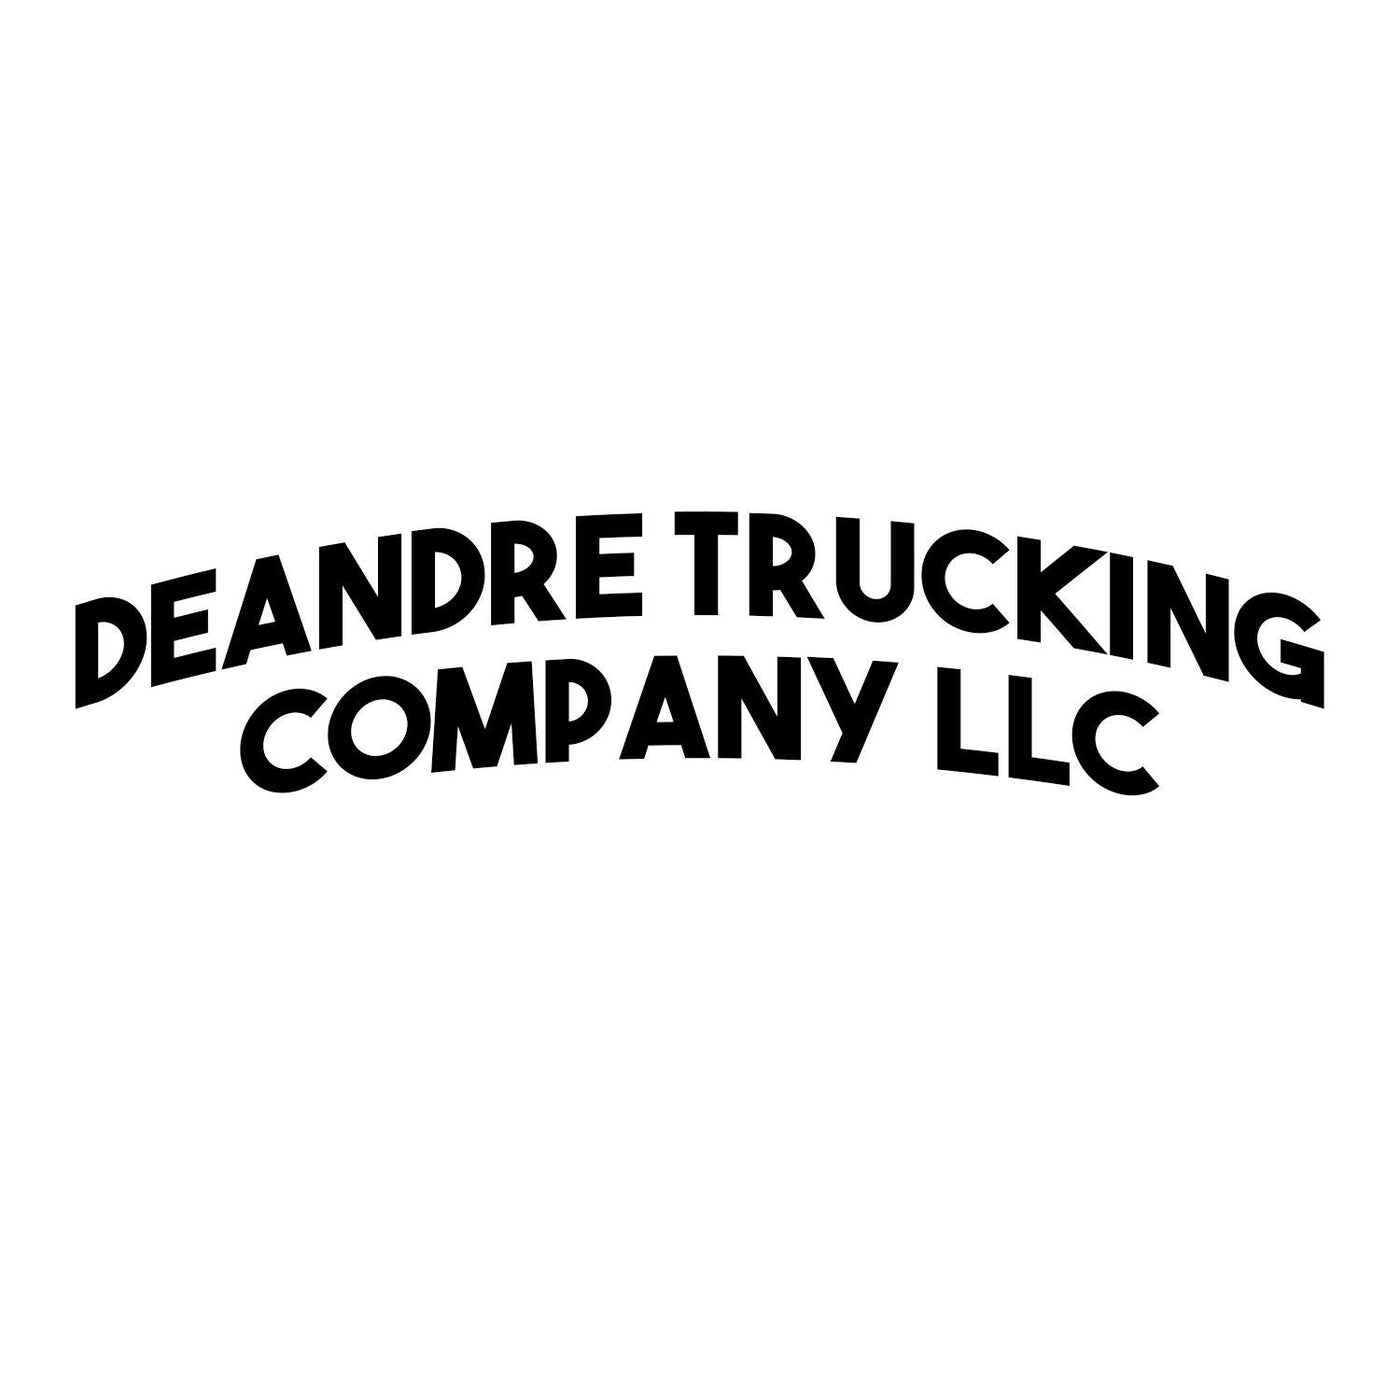 Curved Business Name Decal Two Lines (Set of 2)